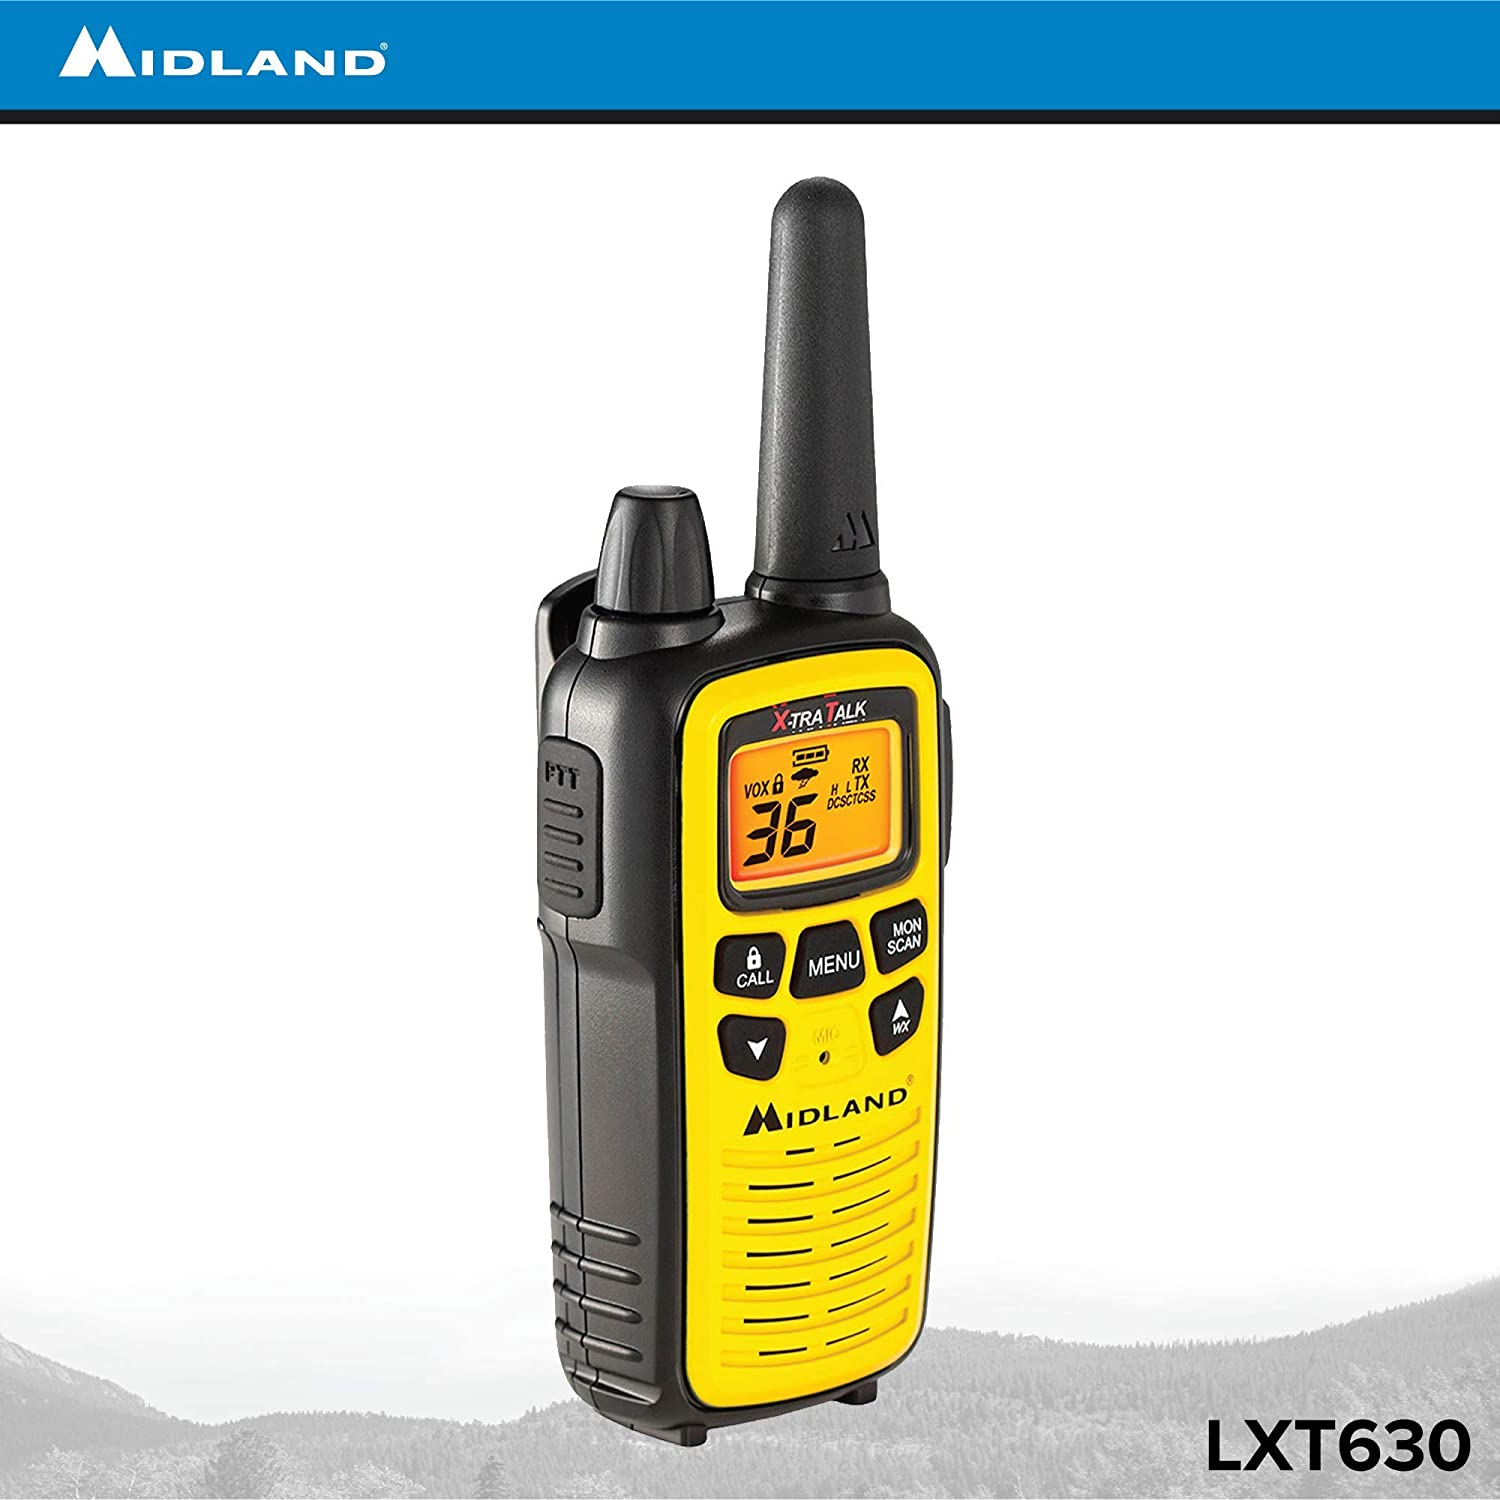 Midland Yellow//Black 121 Privacy Codes Up to 30 Mile Range Walkie Talkie LXT630VP3 Alert 36 Channel FRS Two-Way Radio 3 Pack /& NOAA Weather Scan